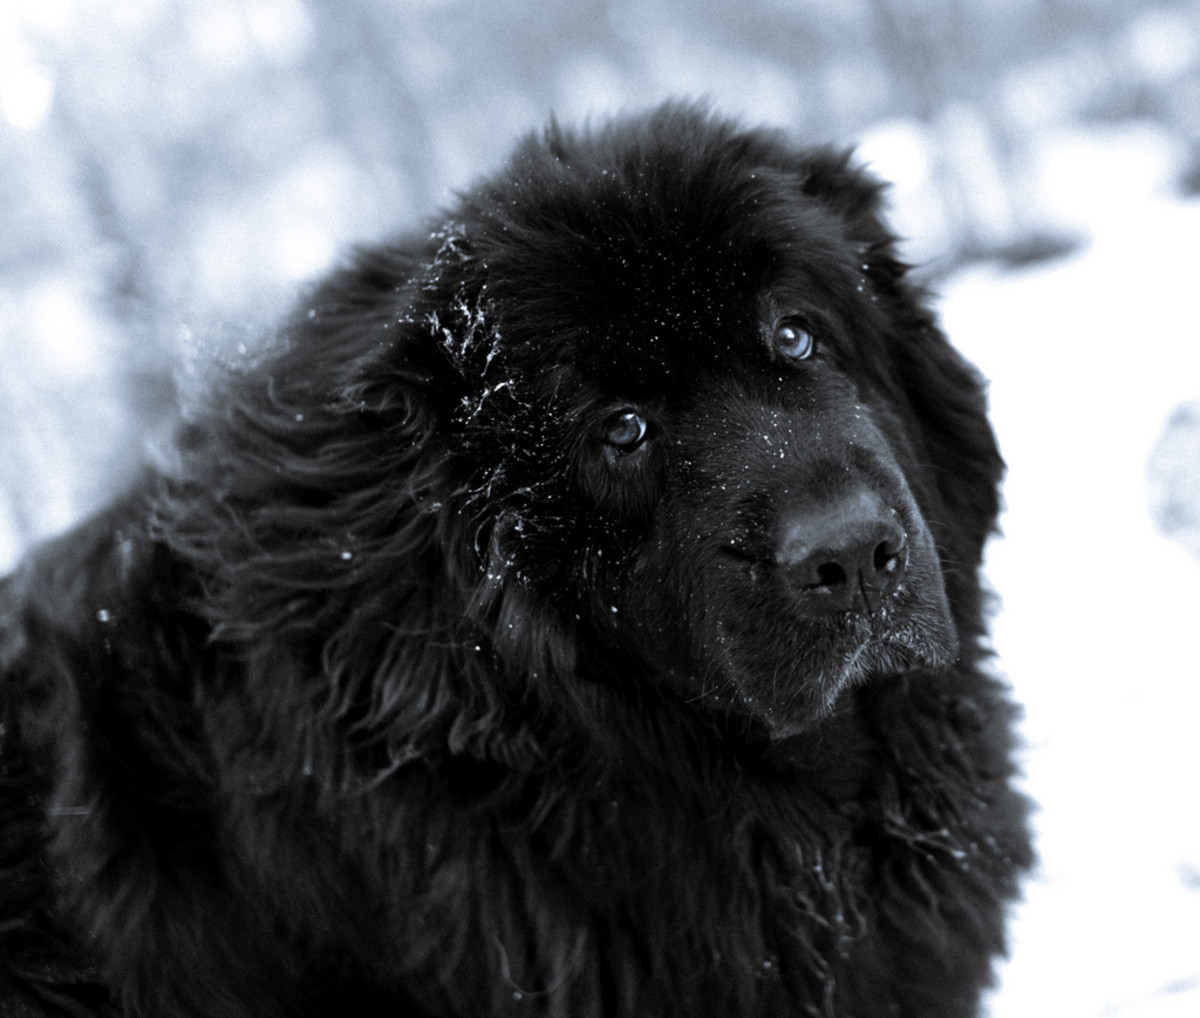 The Newfoundland is a gentle giant, sweet and mild in nature.